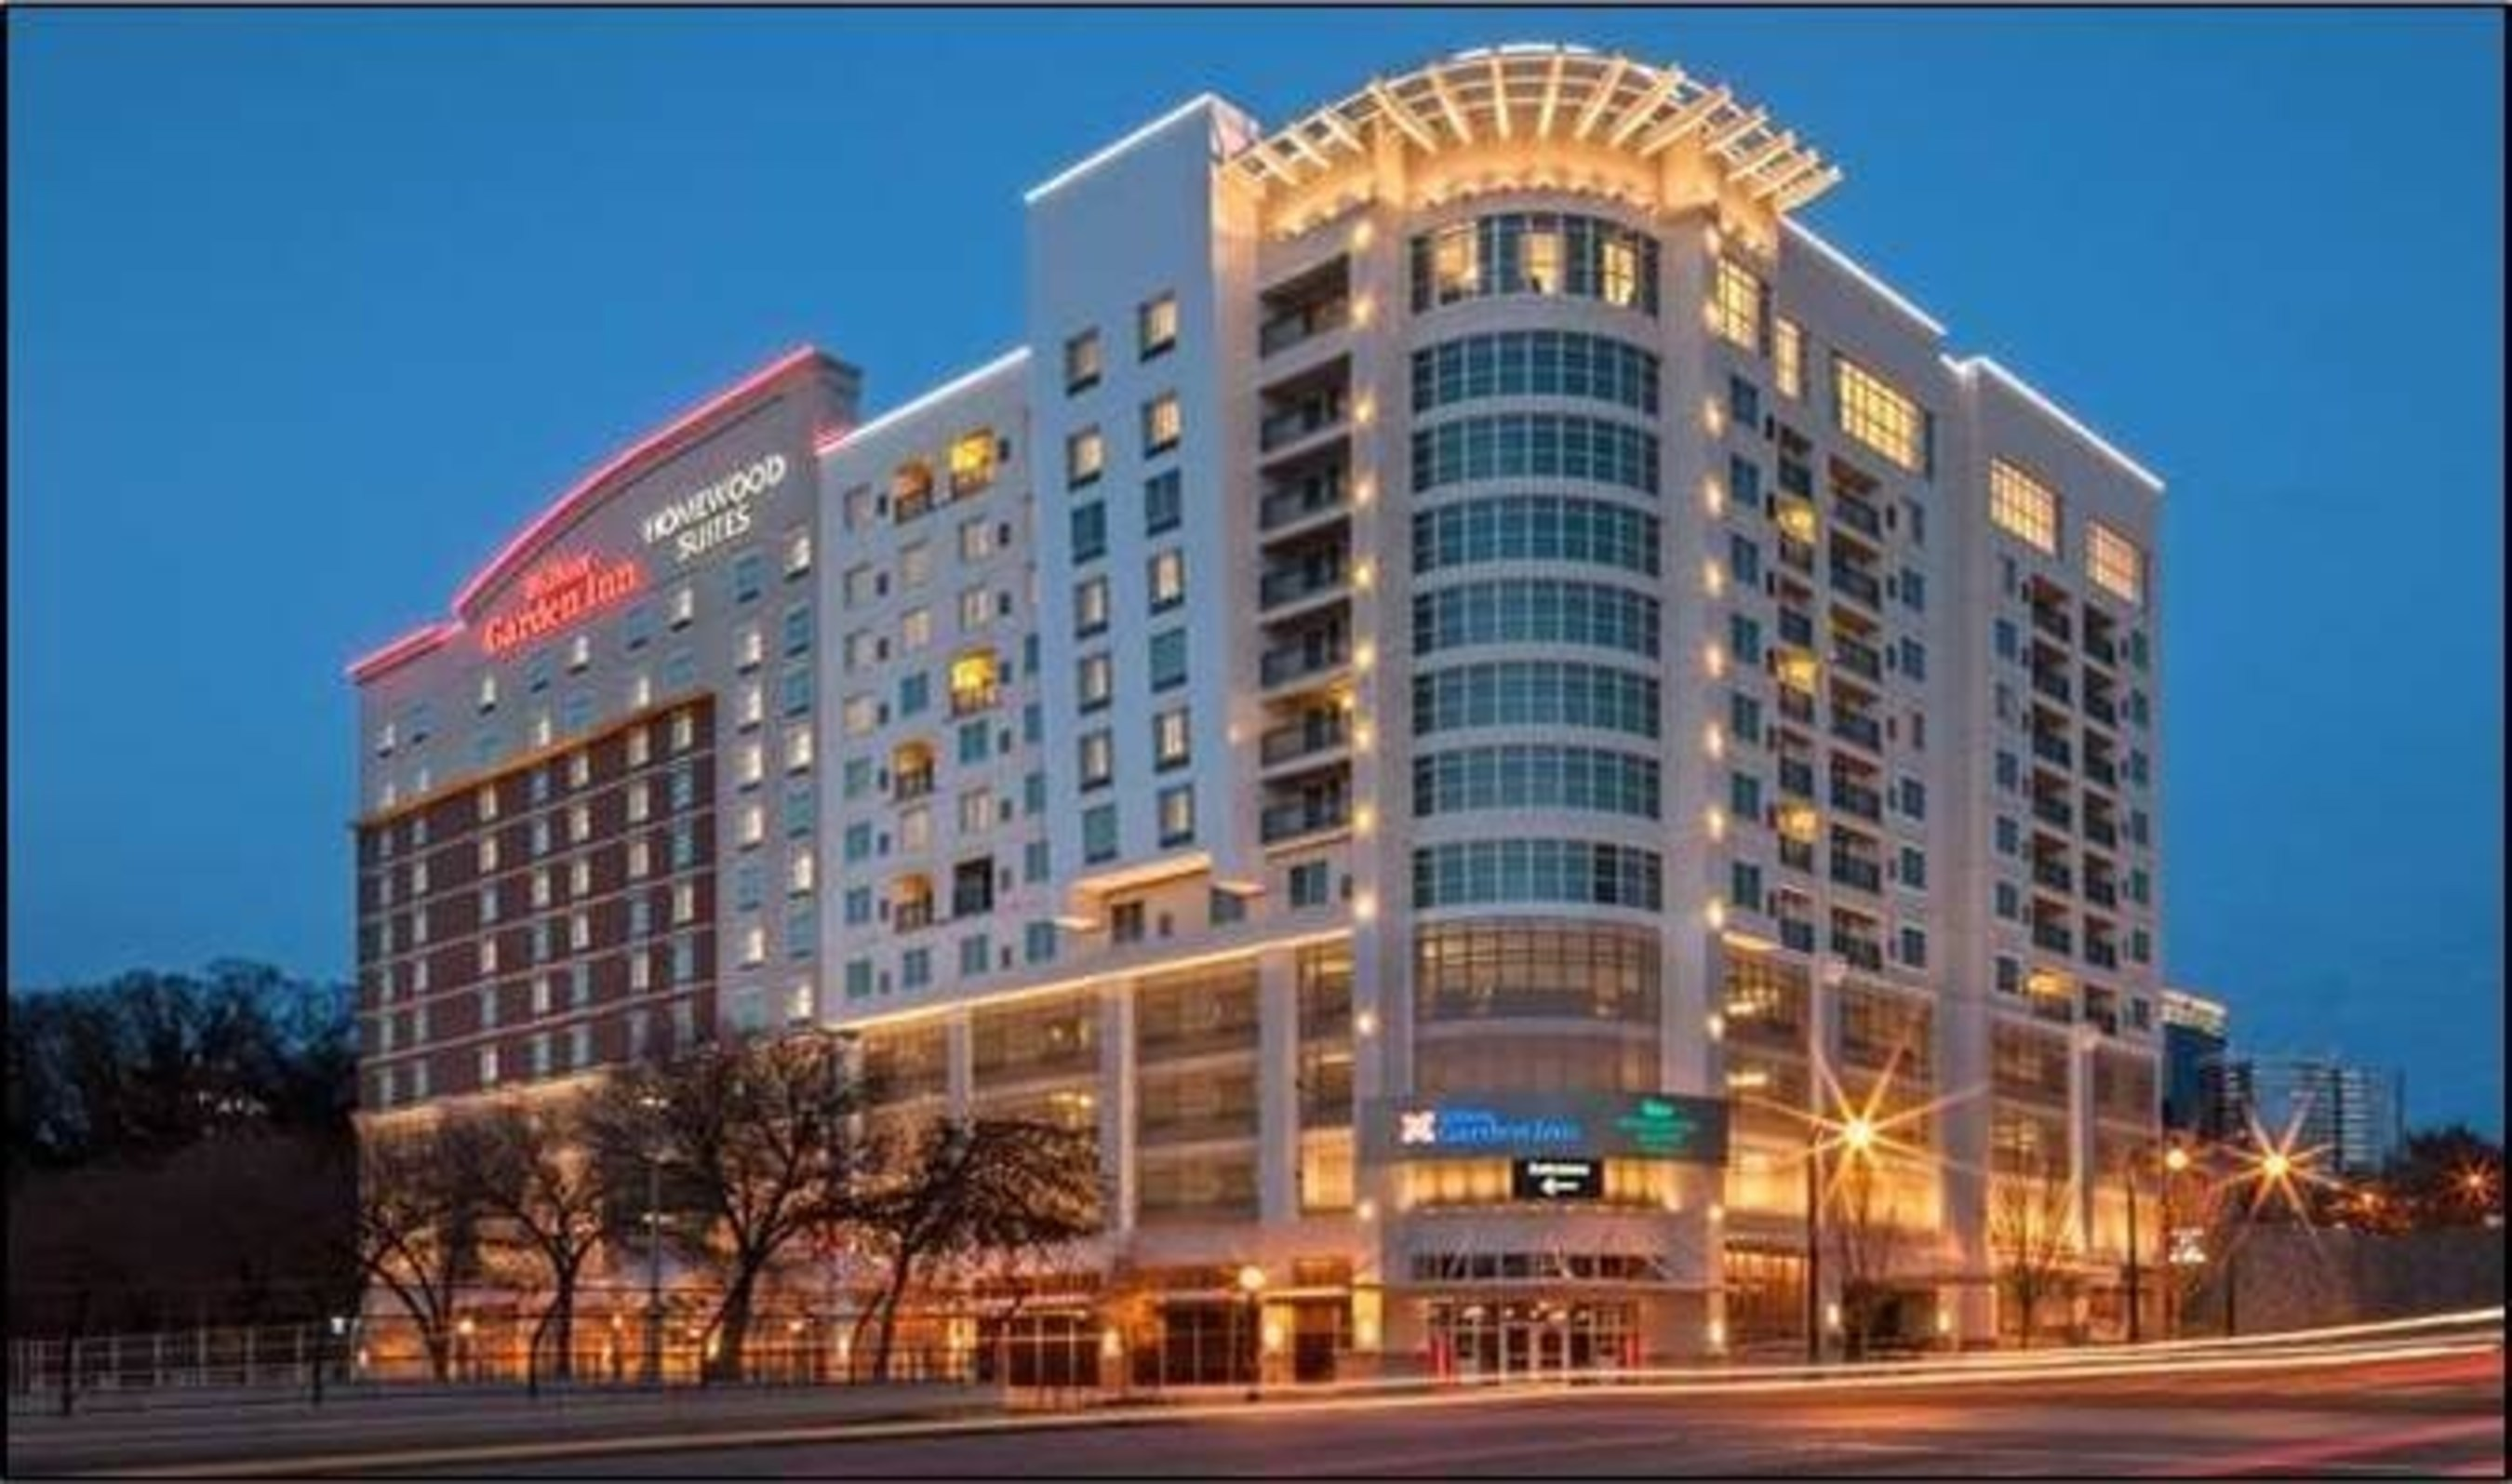 Carey Watermark Investors announced that it has acquired the newly-built Hilton Garden Inn and Homewood Suites dual-branded hotel in Atlanta, Georgia. The select-service and extended-stay property includes a total of 228 guestrooms and is located in Midtown Atlanta.